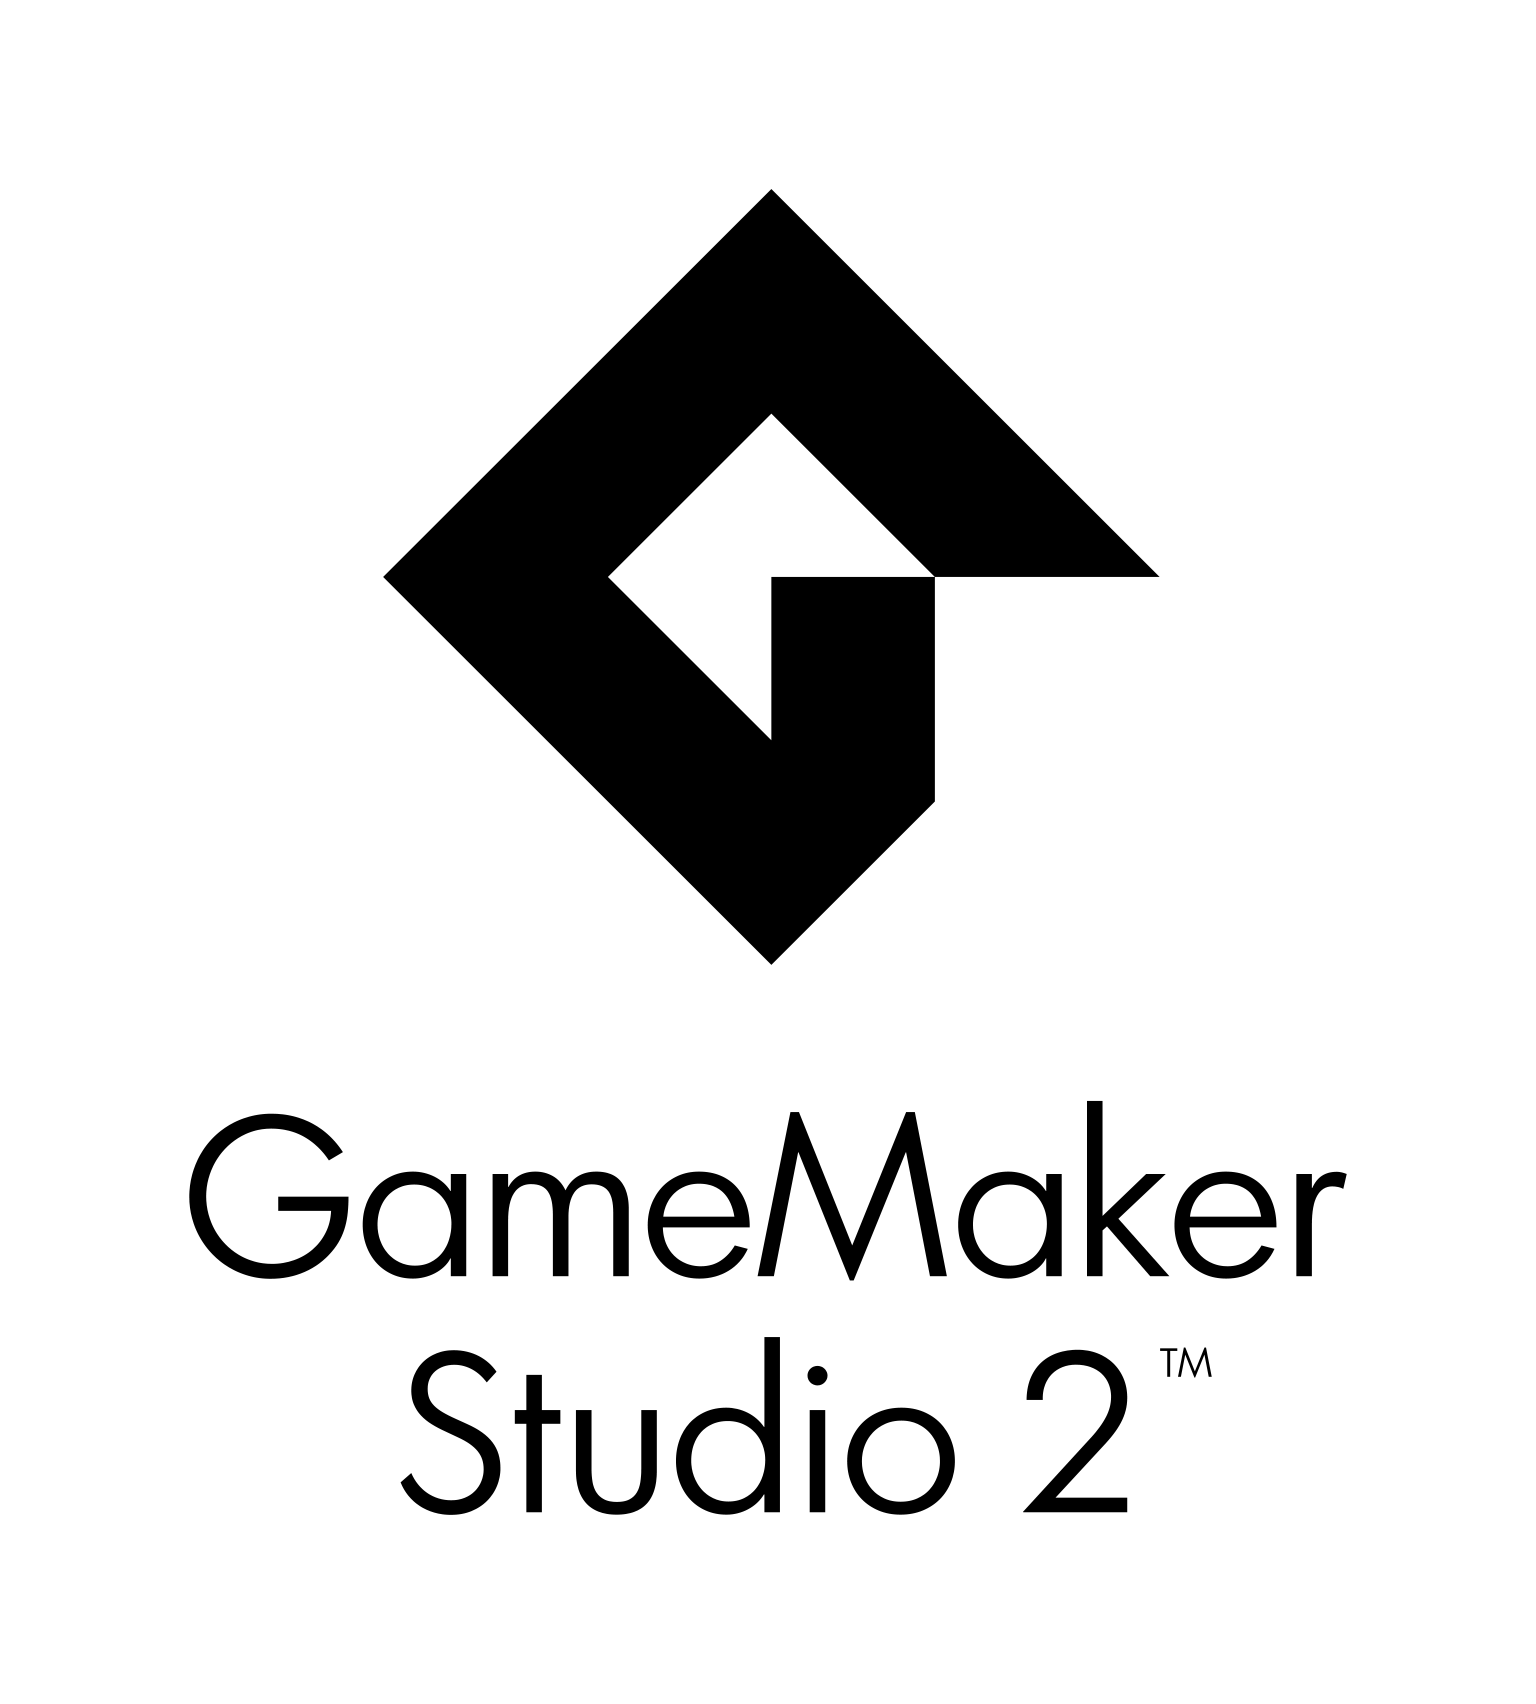 game maker studio 2